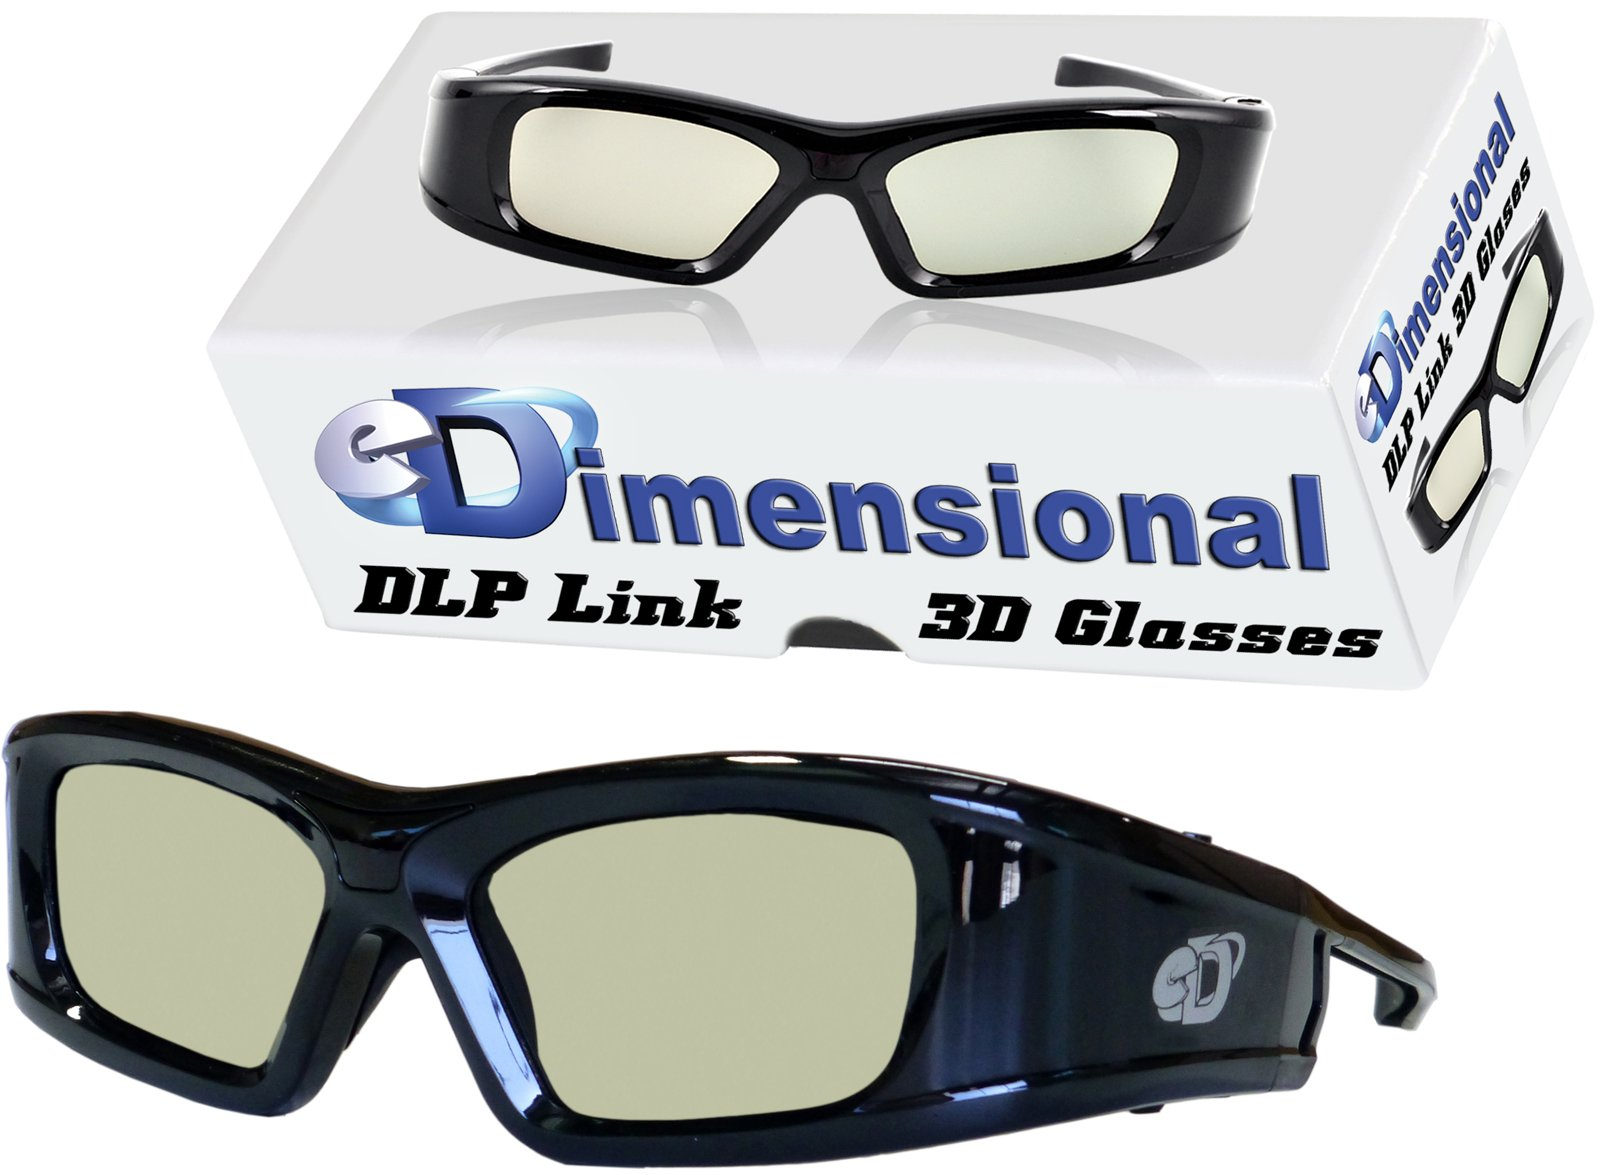 Adult DLP LINK eD Elite 144 Hz 3D Glasses (eDimensional Active Rechargeable) for All 3D DLP Projectors - BenQ, Optoma, ViewSonic & Endless Others! by eDimensional